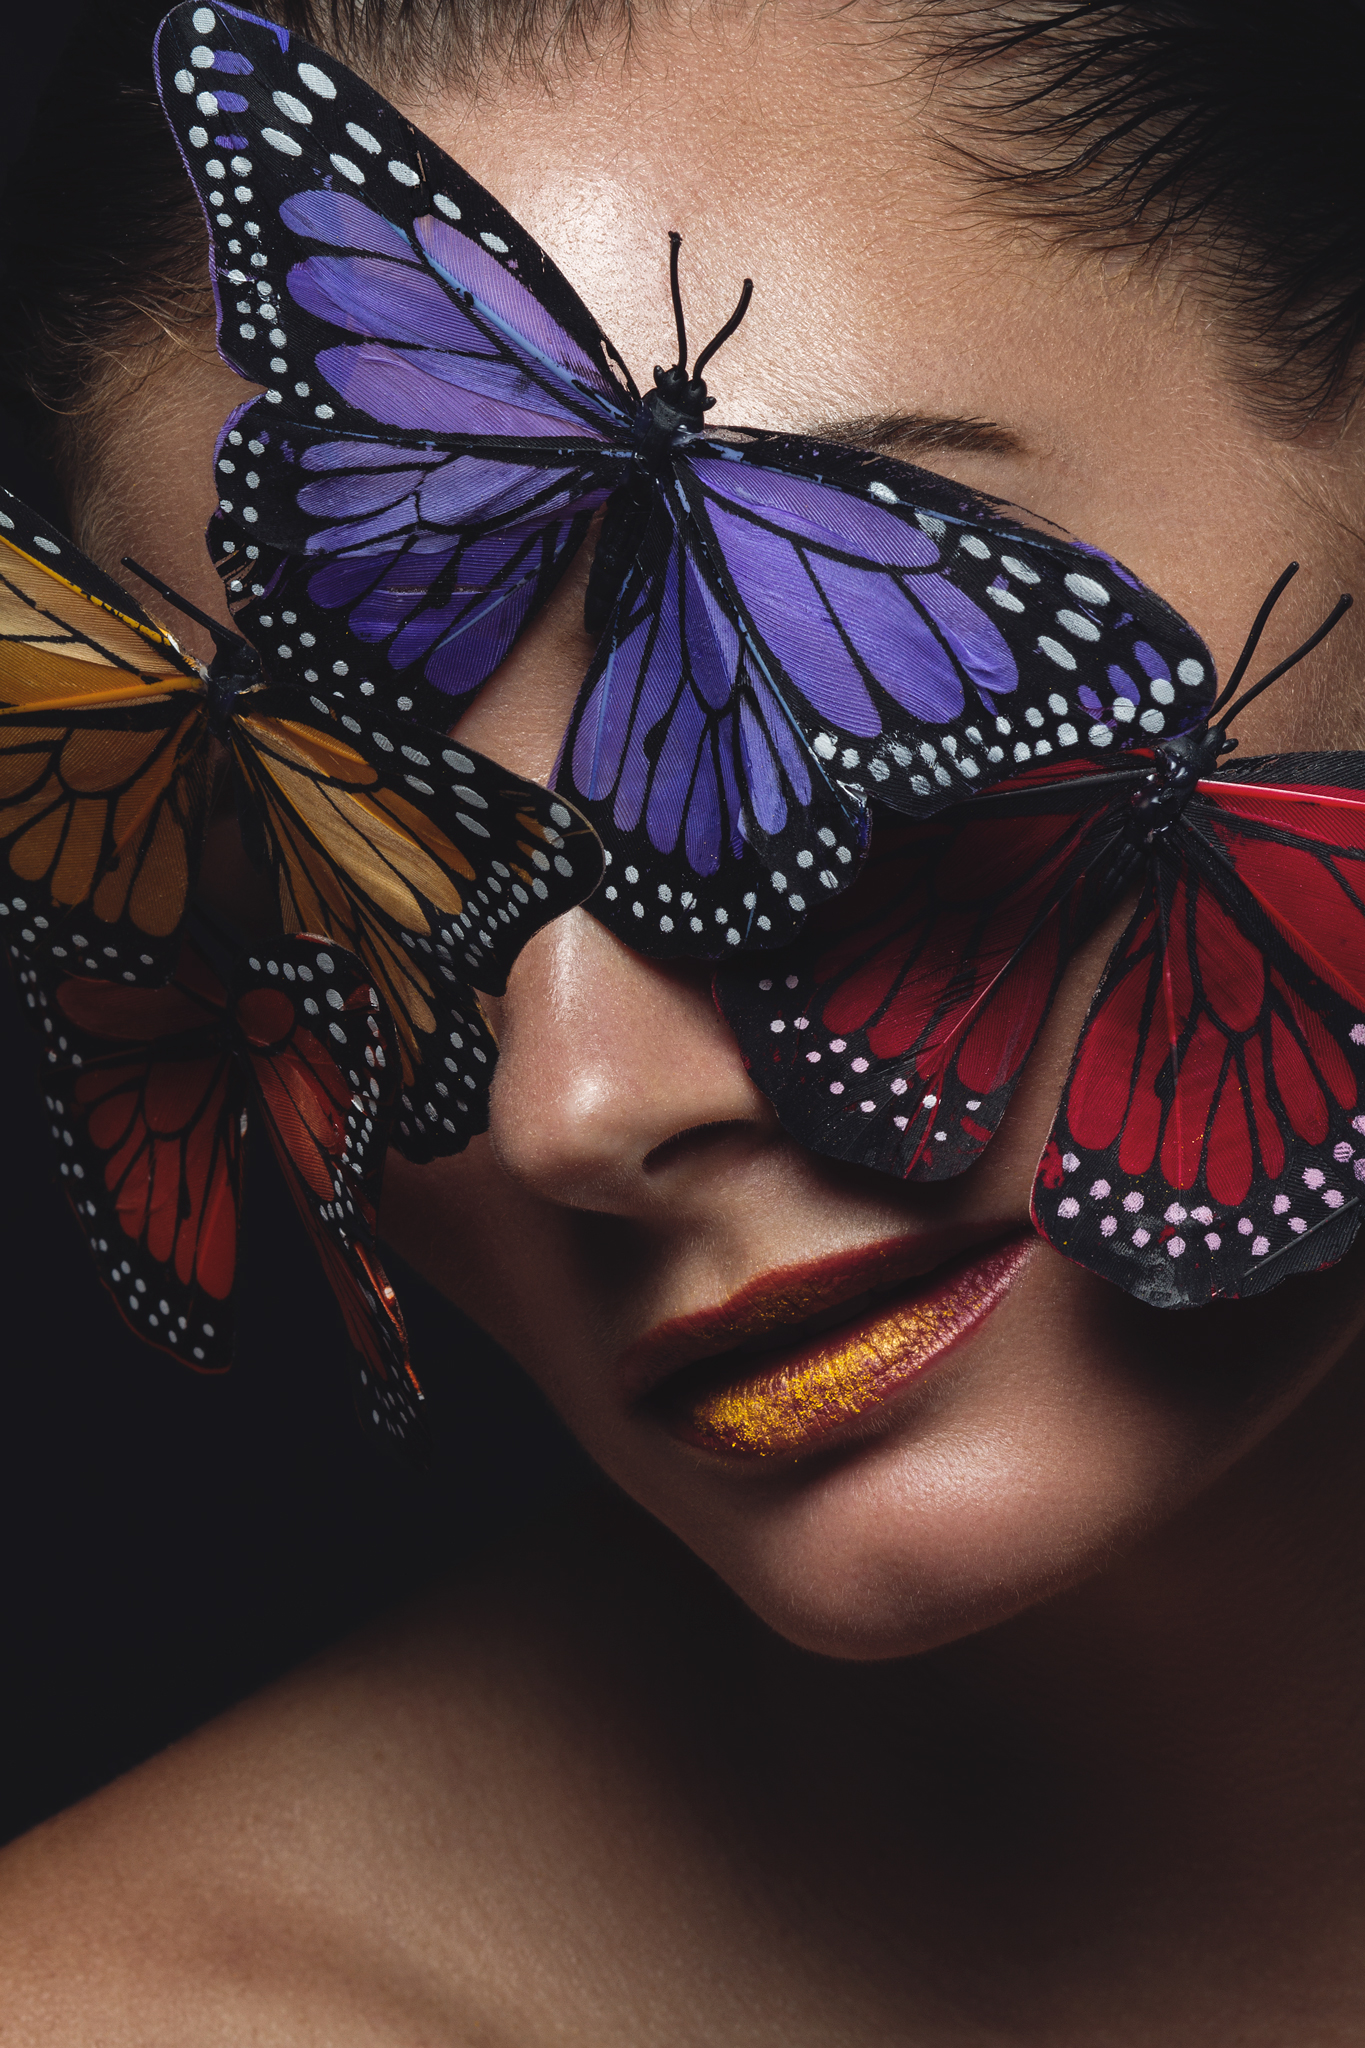 The butterfly Effect / фото Tatan Zuleta